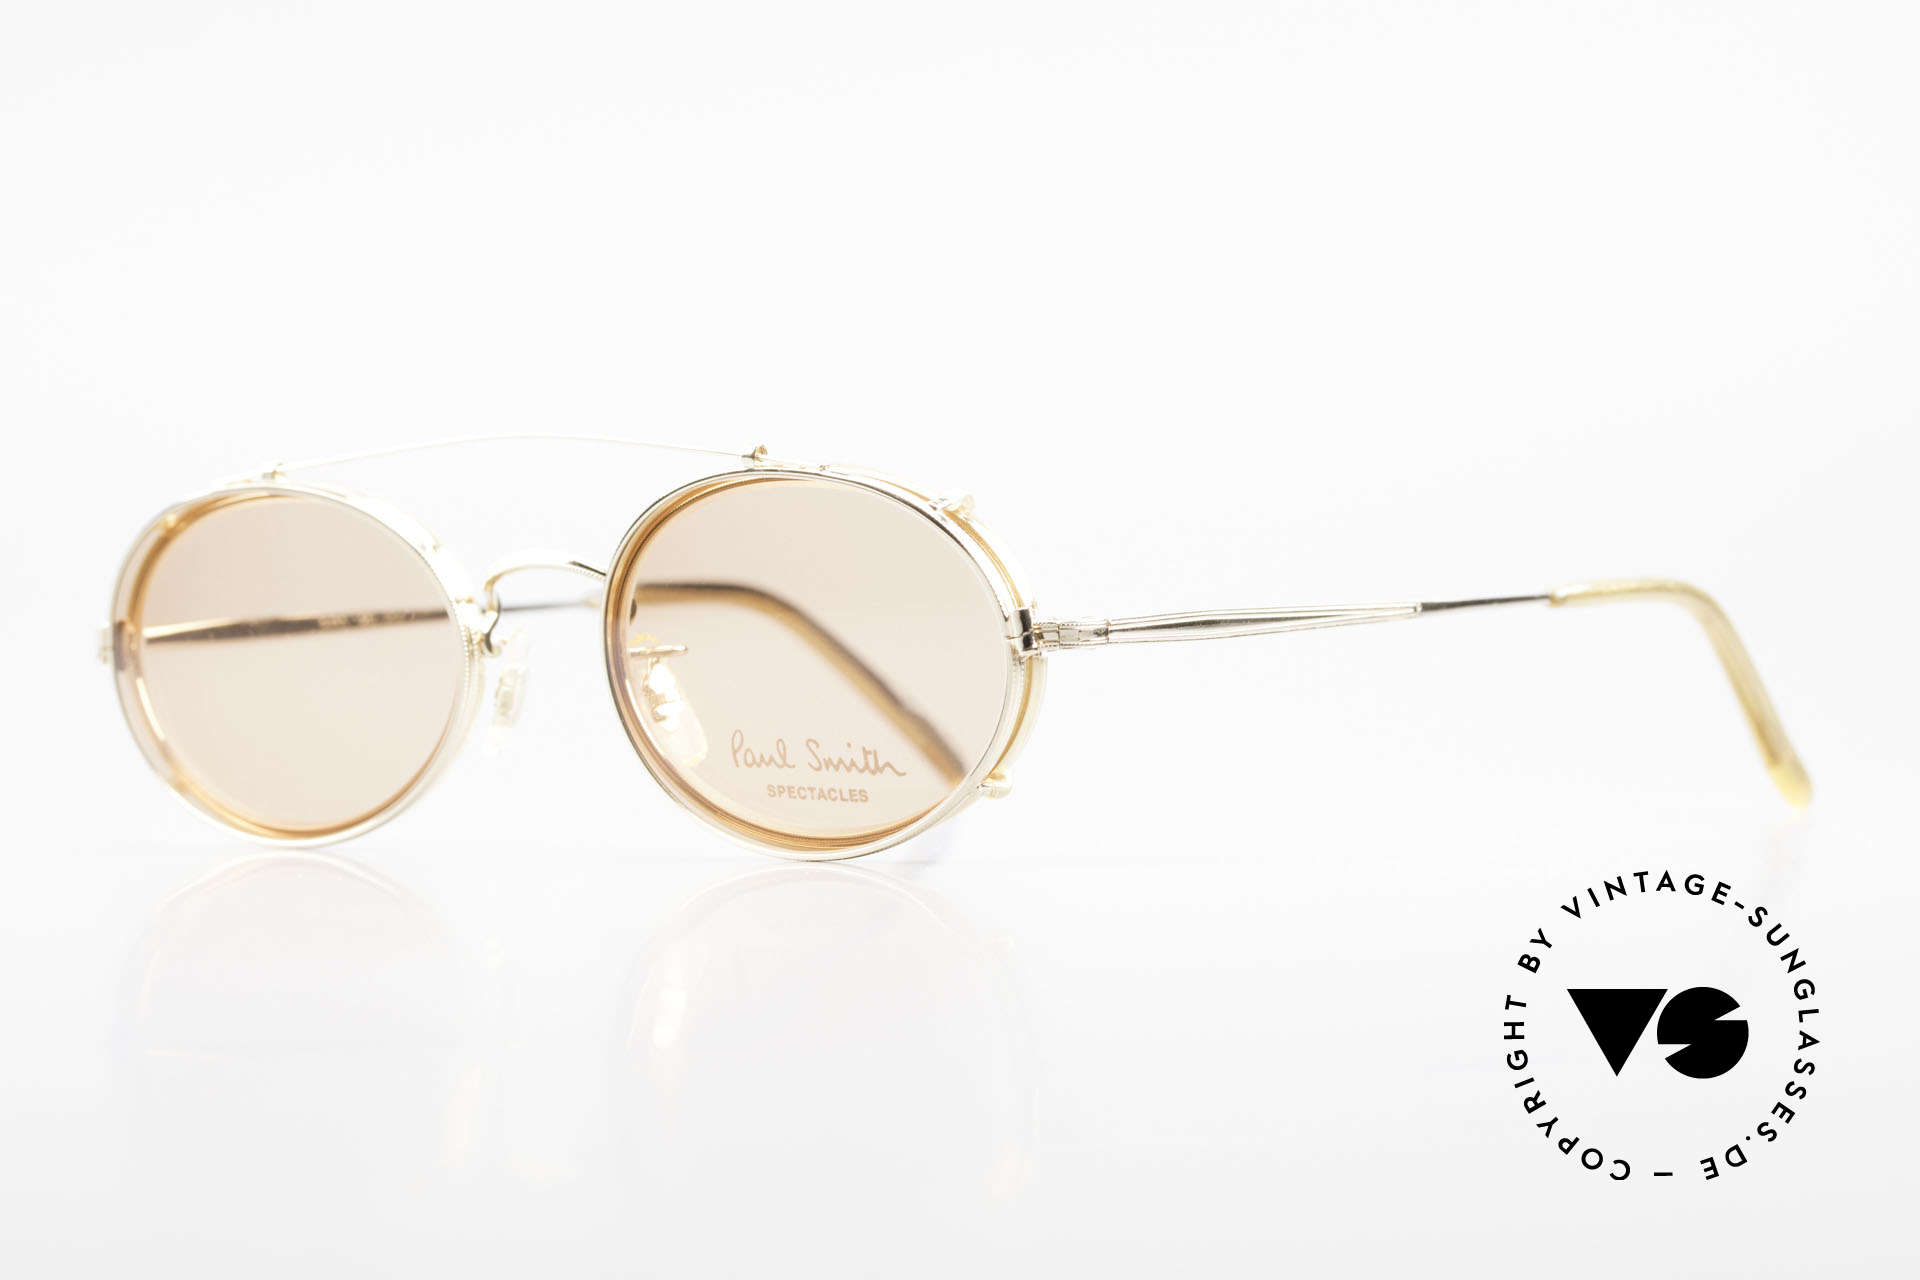 Paul Smith PSR108 Oval Vintage Frame With Clip, this rare OLD Paul Smith Original is still 'made in Japan', Made for Men and Women